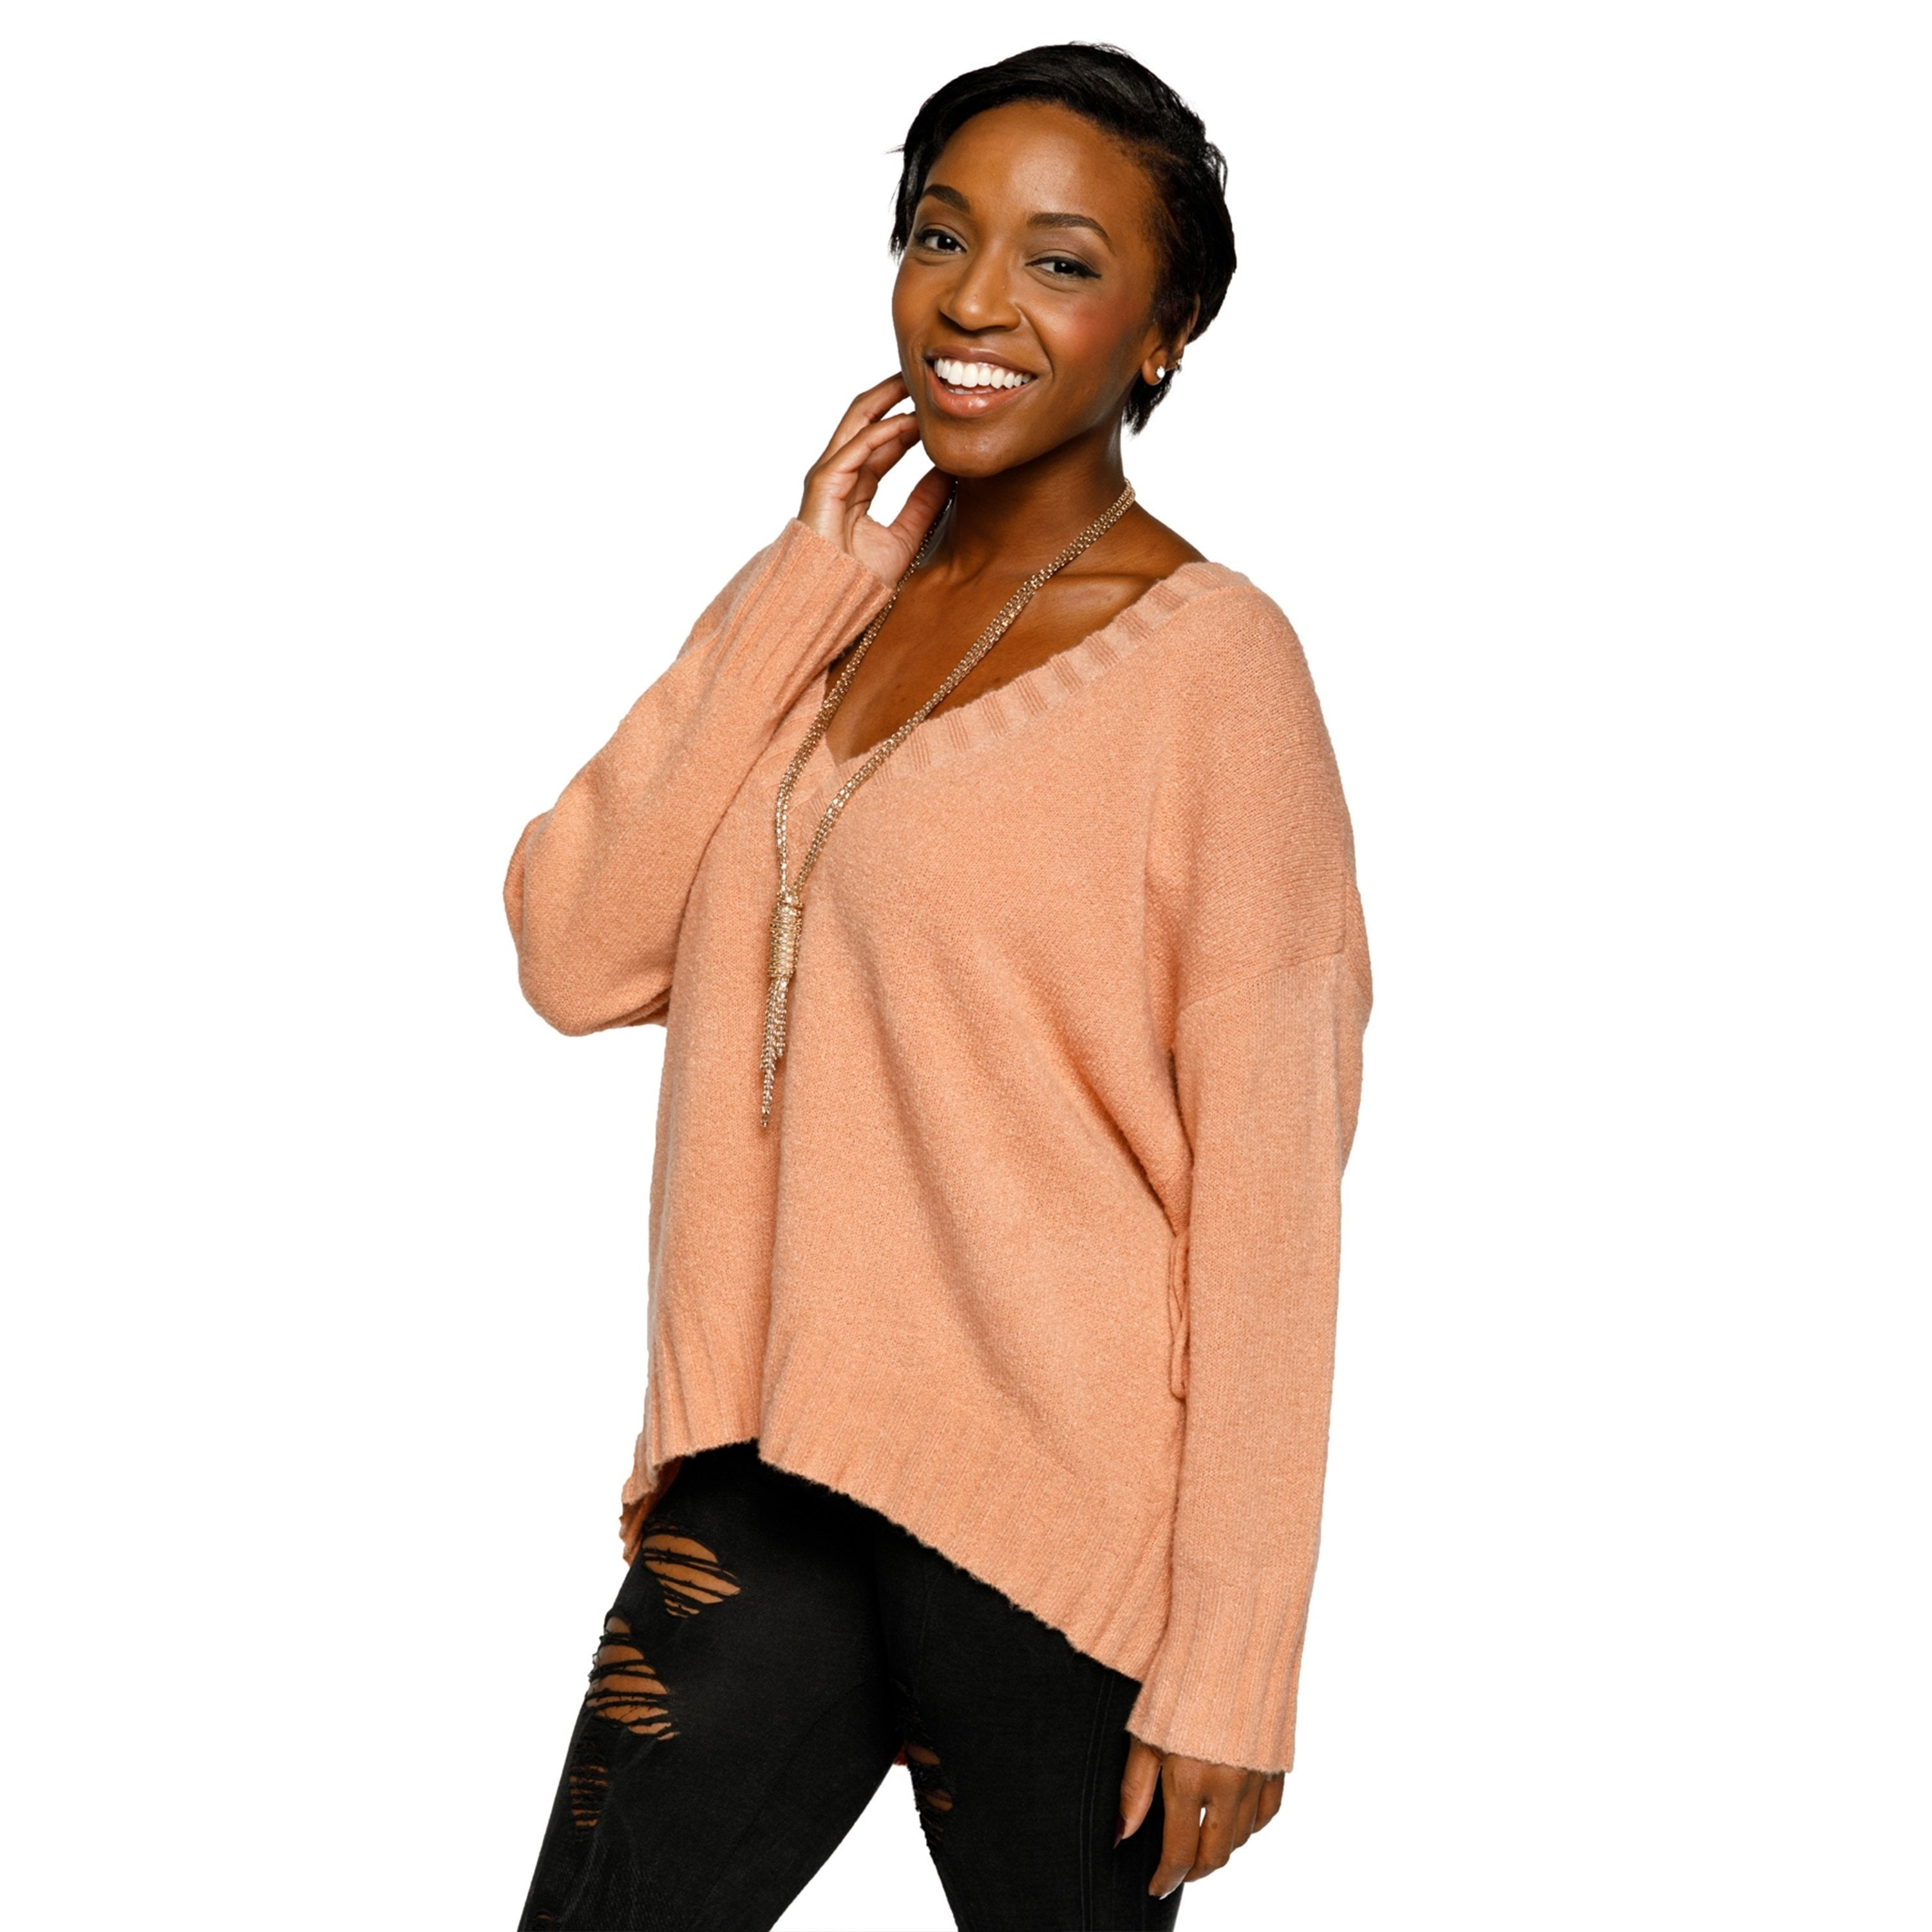 78a3b9250a Shop Xehar Womens Stylish V-Neck Pullover Lace Up Back Knit Sweater - Free  Shipping On Orders Over  45 - Overstock.com - 20180098